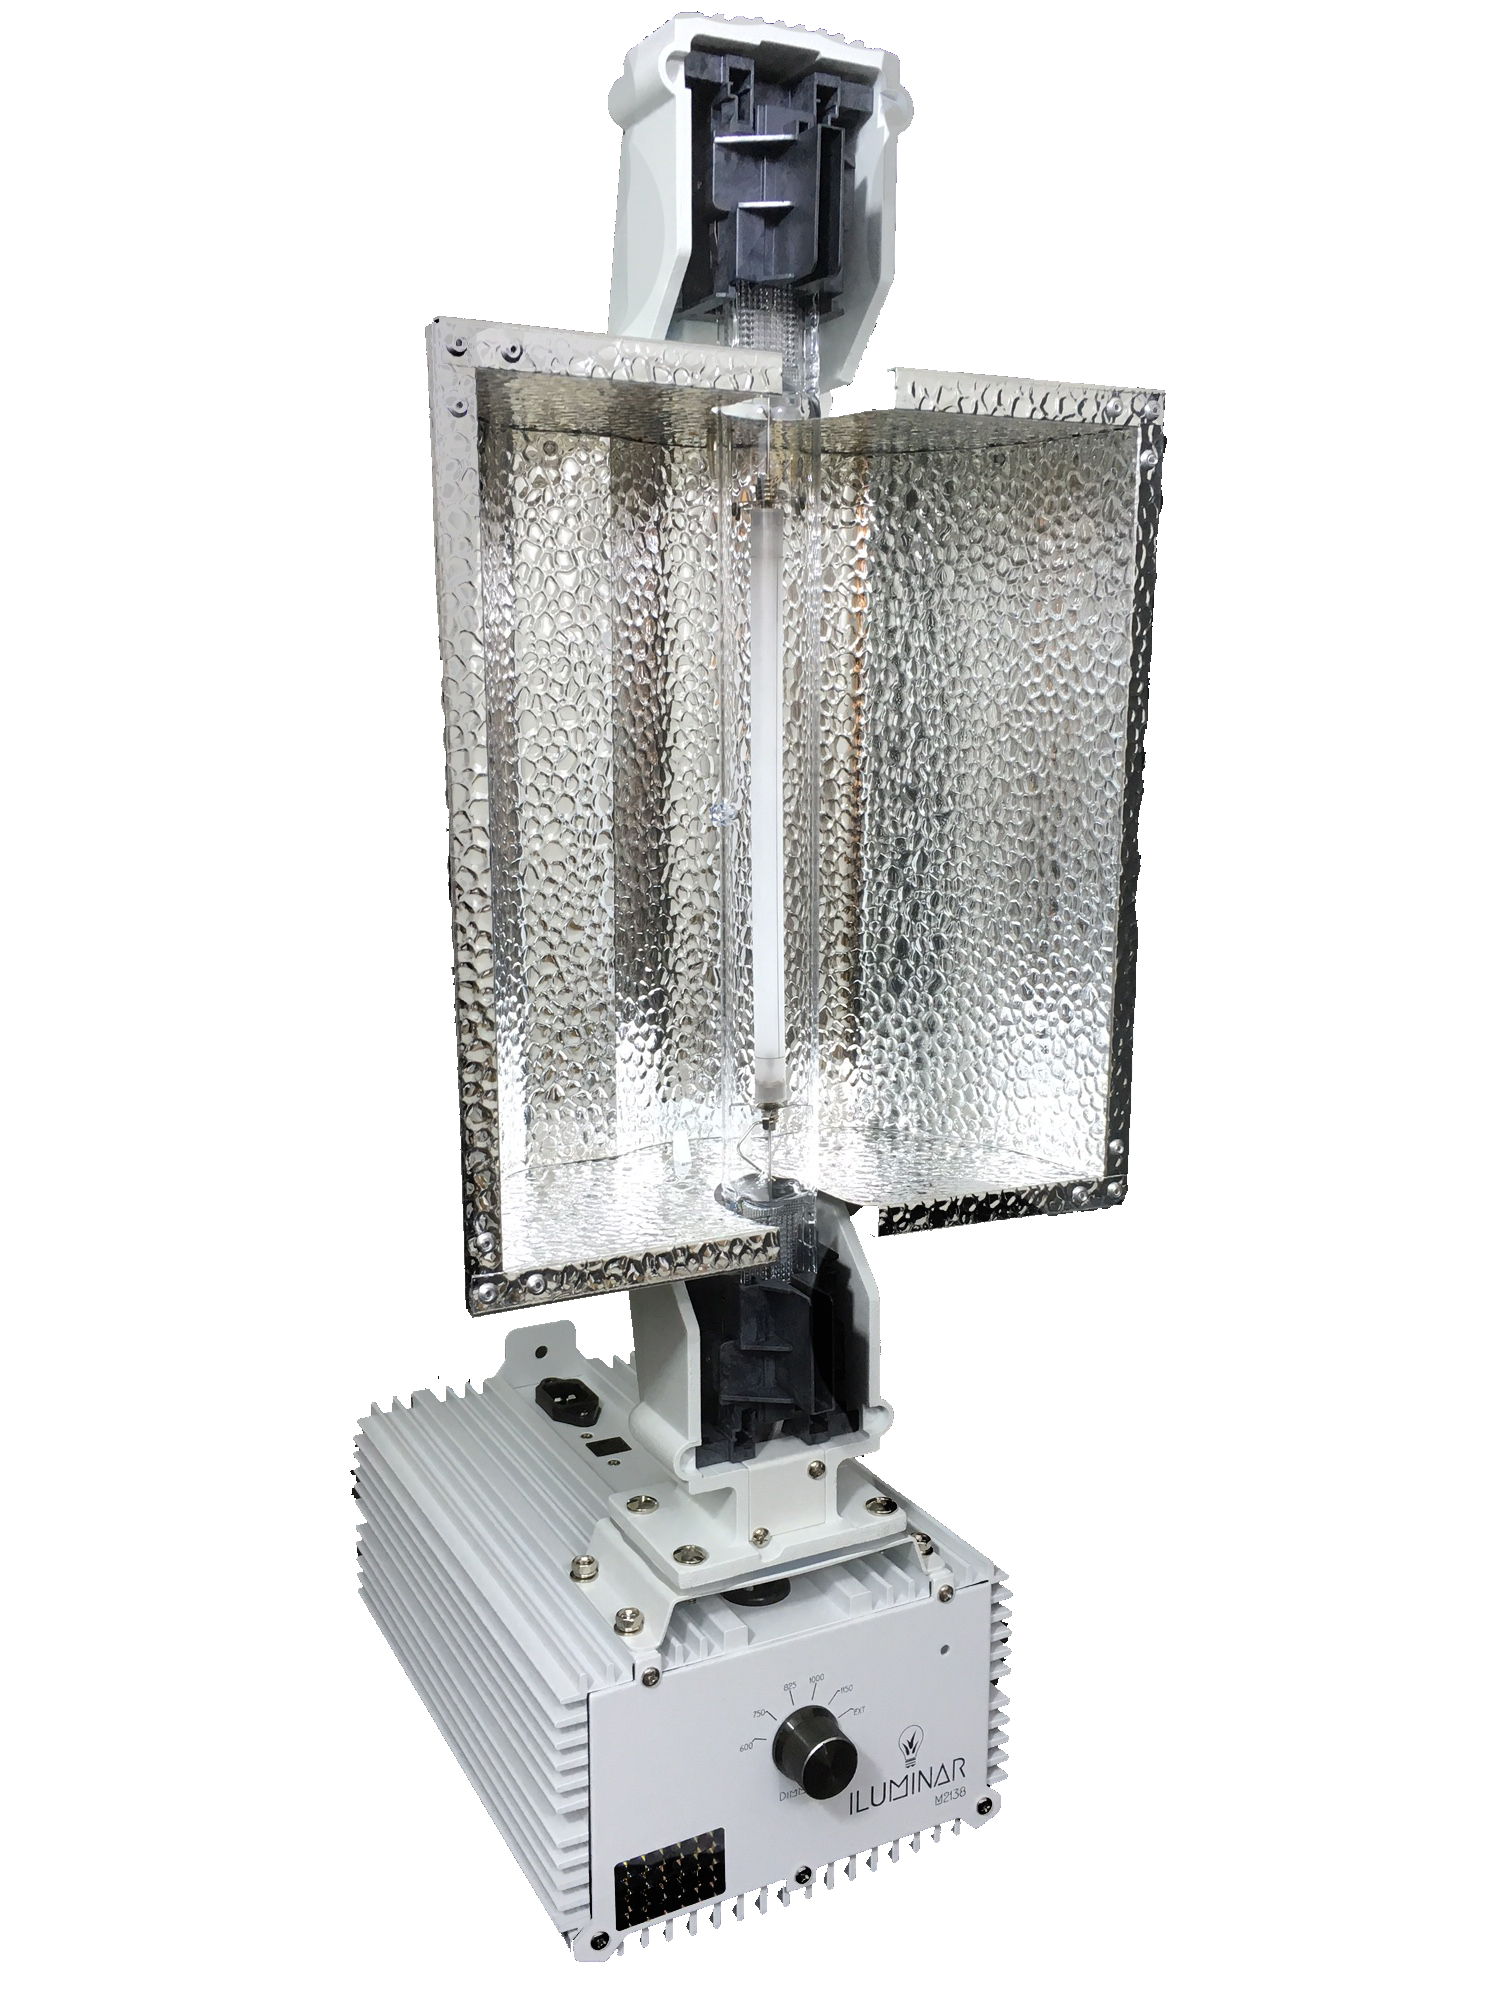 """Iluminar 1000w DE - HPS Complete Commercial Fixture 120/240v .spec-img{ text-align: left; padding: 5%; width: 85%; } The Iluminar 1000w DE - HPS Complete Commercial Fixture 120/240v is a feature-rich Double-Ended High Pressure Sodium all-in-one unit. Designed with a low shadow footprint for commercial reliability, the ILUMINAR DE-HPS 1000W unit stands toe-to-toe with any comparable fixture on the market with all the features you'd expect from a premium fixture without the premium cost. You shouldn't have to pay extra for a controllable, dimmable, high quality fixture just because it has a """"name"""" on it…we let the numbers speak for themselves with the Iluminar 1000w DE - HPS Complete Commercial Fixture 120/240v model. Iluminar 1000w DE - HPS Complete Commercial Fixture 120/240v Features: -Dimmable high frequency ballast with overdrive -Premium DE-HPS spec bulb -German Aluminum reflector with 96%> reflectivity -Interchangeable reflectors for different ceiling heights -DE Lamp Balanced mounting -Remote control compatible The major difference between the Iluminar 1000w DE - HPS Complete Commercial Fixture 120/240v and other lighting manufacturers is, quite simply, the cost. The cost to purchase, the cost to maintain, and the cost of ownership of an Iluminar 1000w DE - HPS Complete Commercial Fixture 120/240v is the lowest on the market by design. The Iluminar 1000w DE - HPS Complete Commercial Fixture 120/240v is designed with the sole purpose of making growing easier and better for you, the professional gardener. With over 20 years of direct lighting, growing, and product development experience, Iluminar offers the """"right light"""" for making your plants grow strong and healthy. Iluminar 1000w DE - HPS Complete Commercial Fixture 120/240v Specifications and Operational Data Iluminar 1000w DE - HPS Complete Commercial Fixture 120/240v Protections -Microprocessor Driven -End of Lamp Life (EOL) -Open Circuit Protection -Ignition Failure Protection -Thermal Sensing Protection """